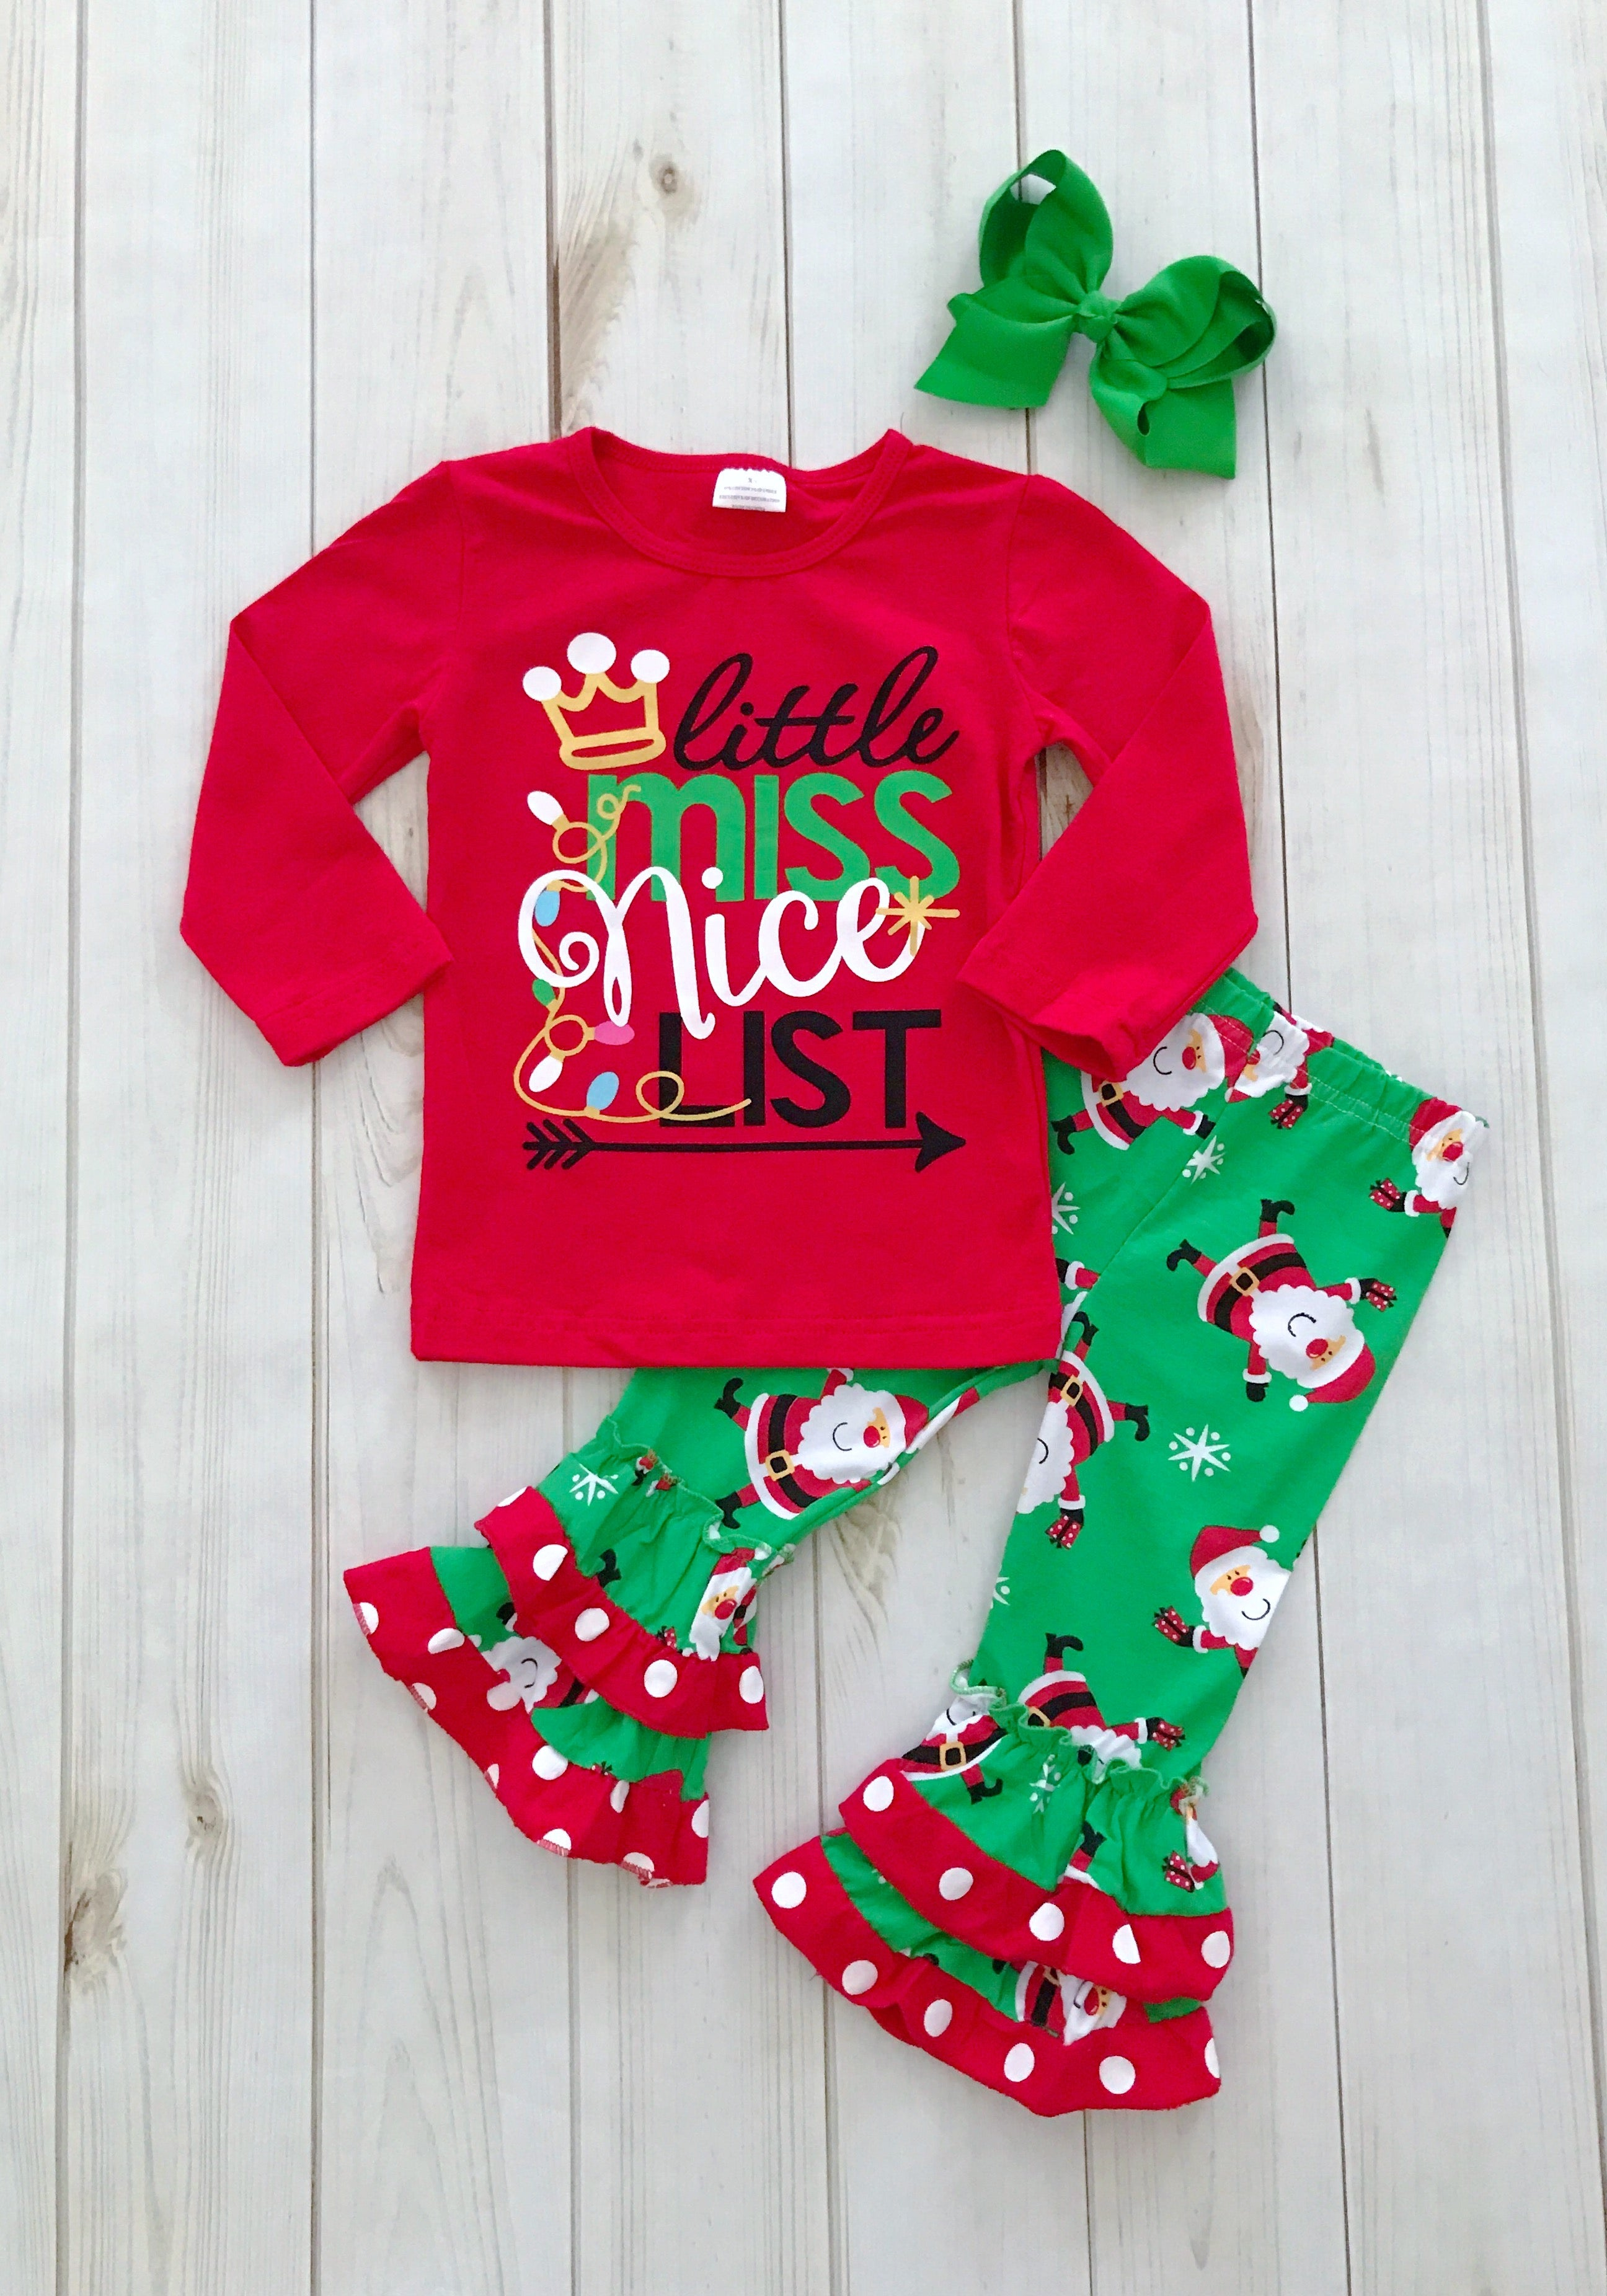 Little Miss Nice List Christmas Outfit, girls boutique clothing ...